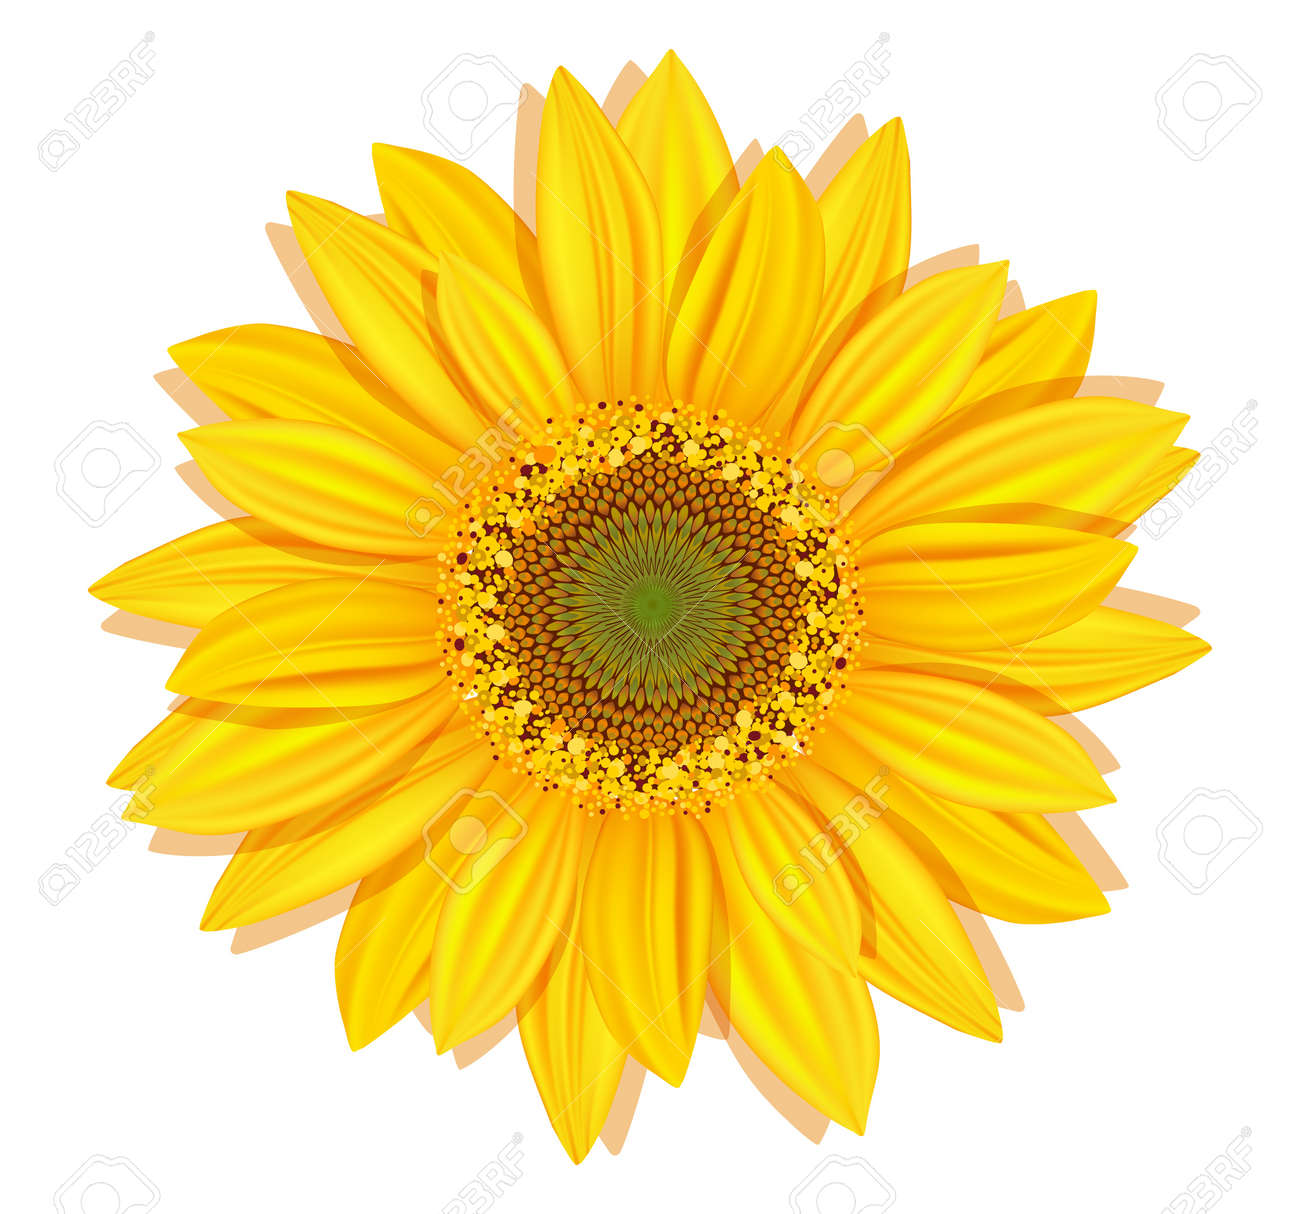 32 071 sunflower cliparts stock vector and royalty free sunflower rh 123rf com sunflower clip art outline sunflowers clip art free